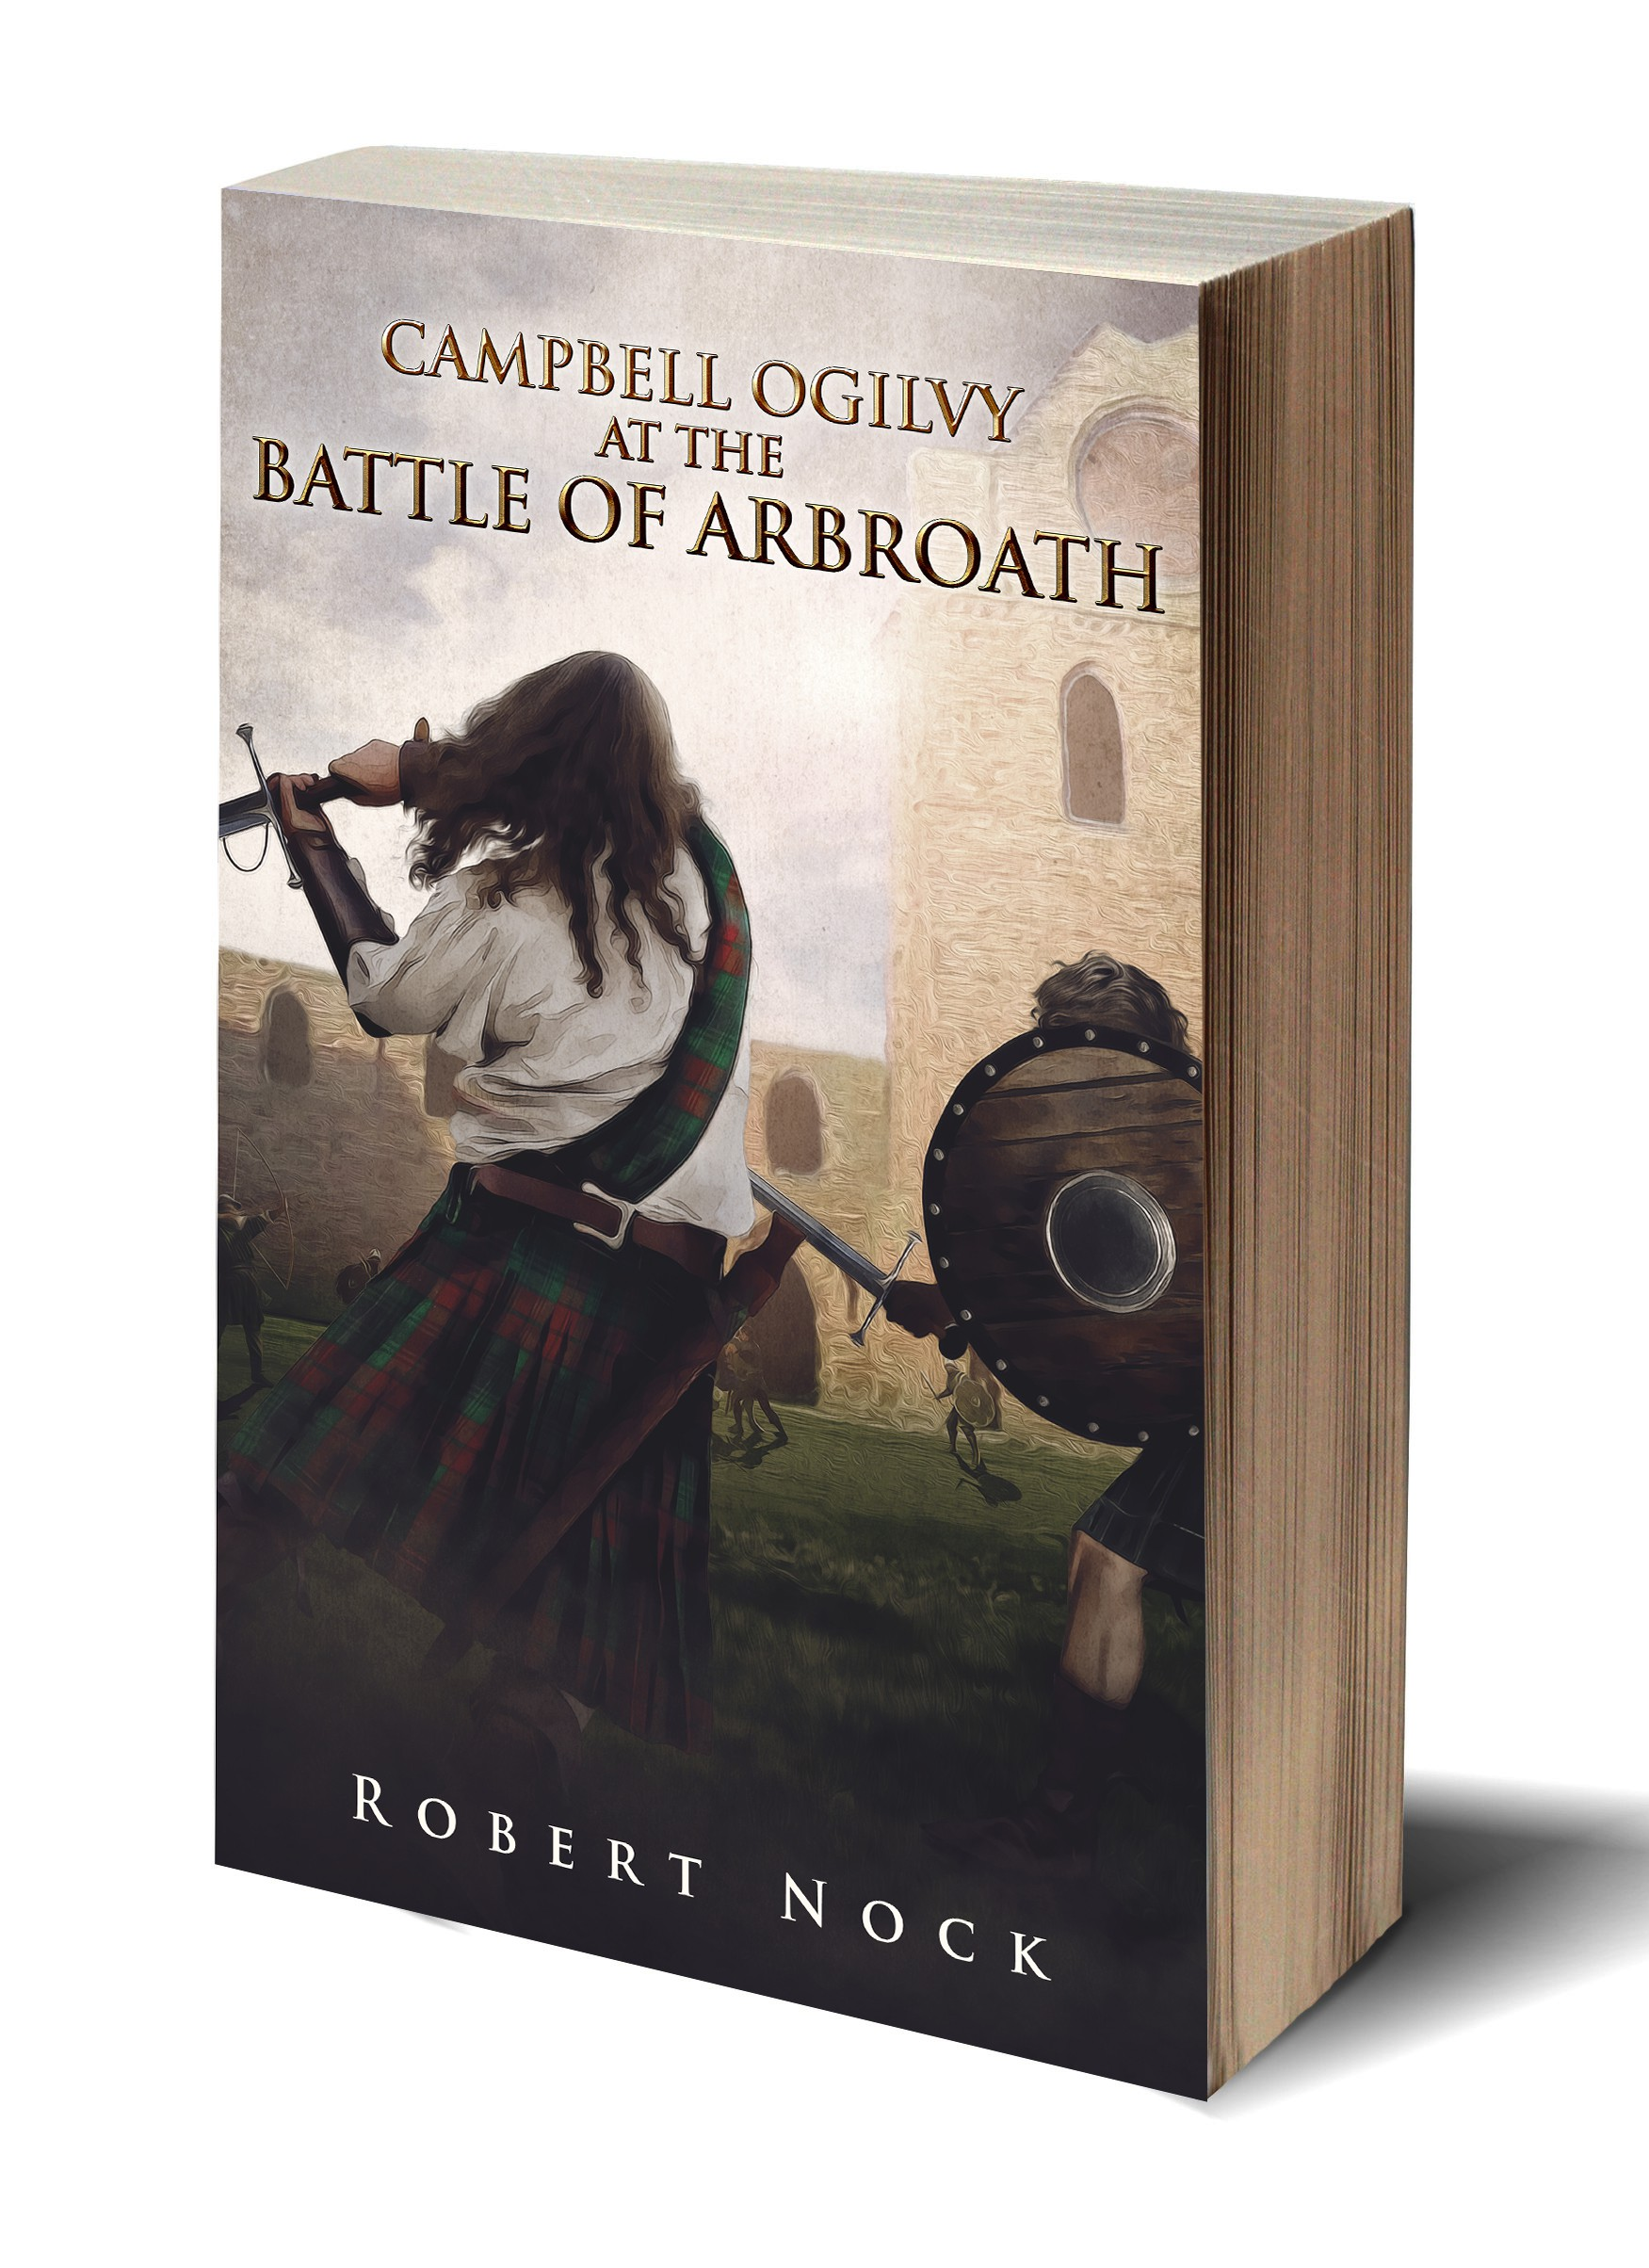 BOOK COVER! Battle of Arbroath